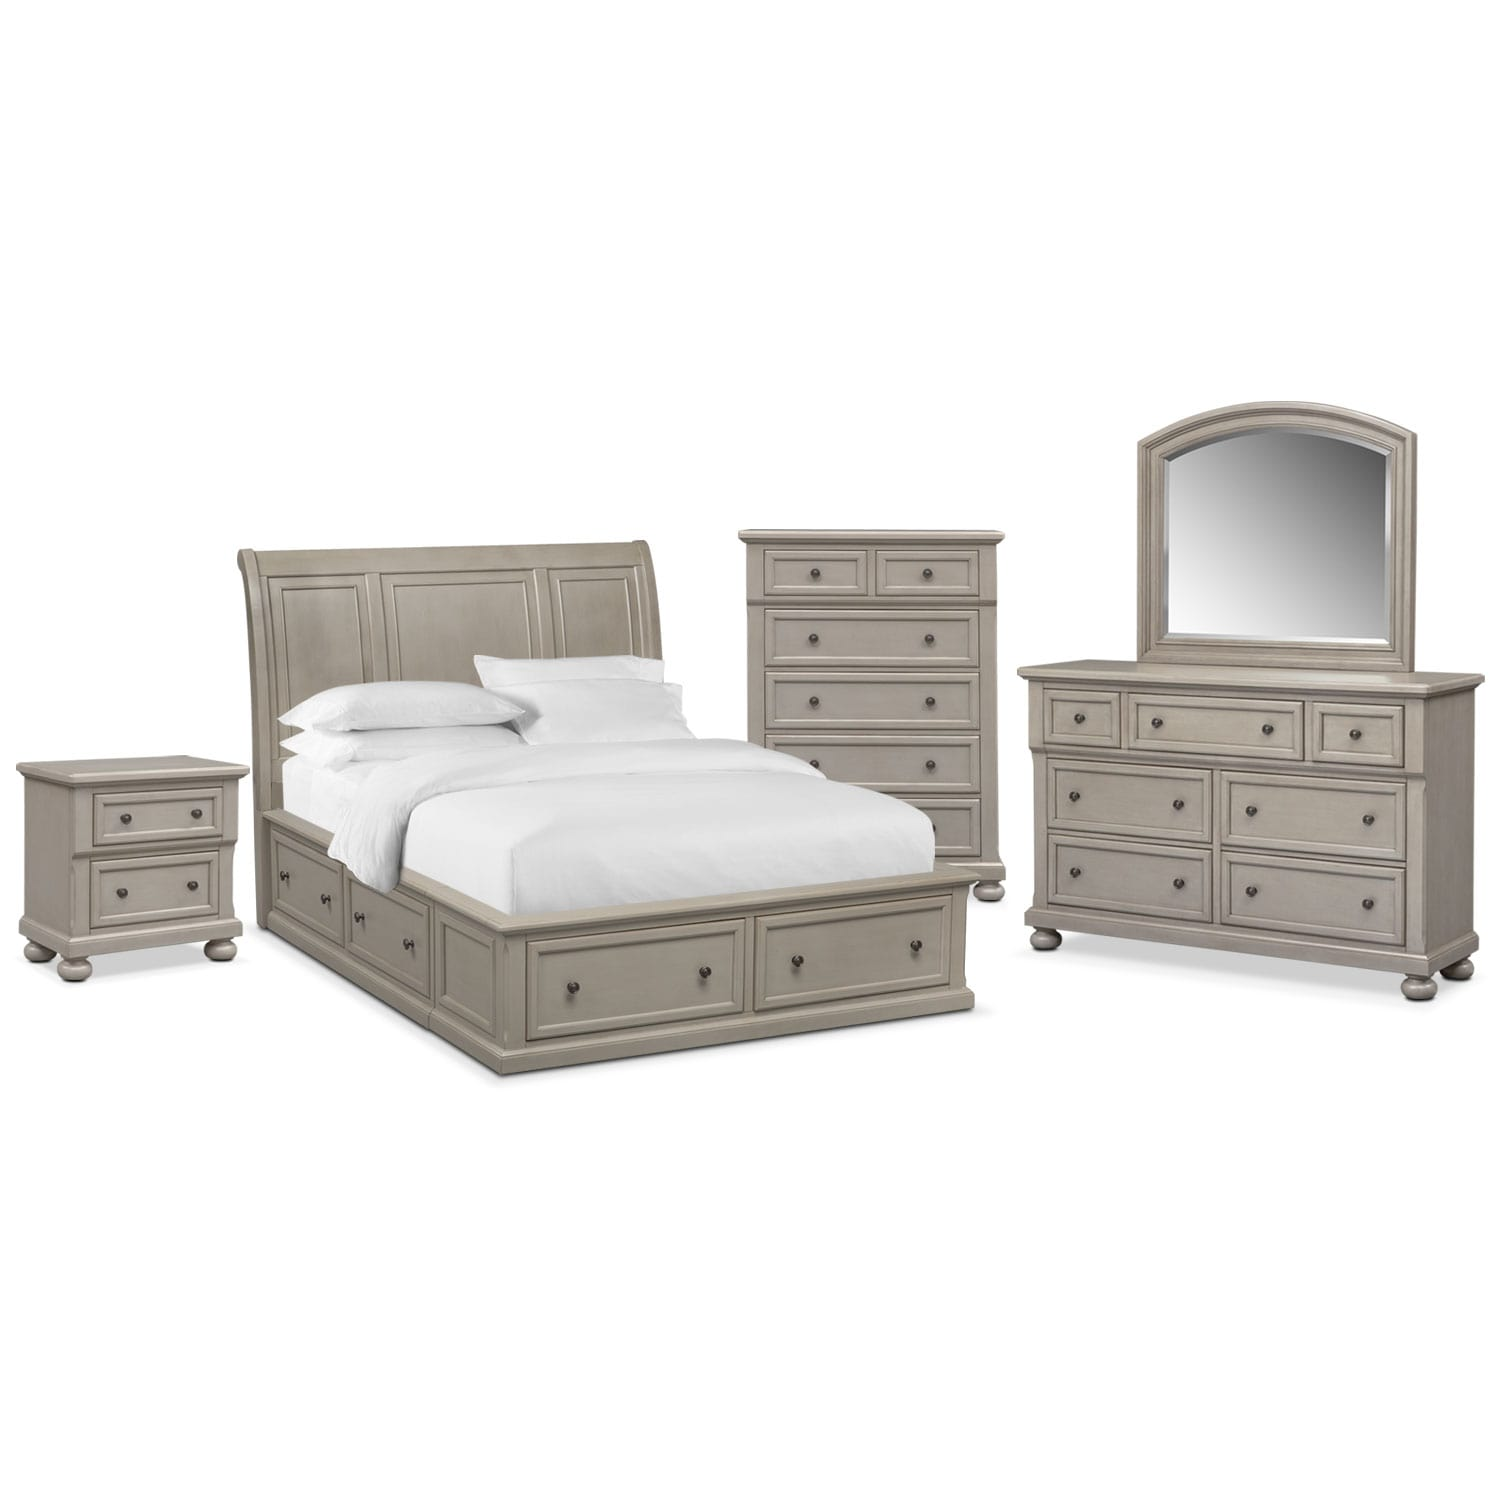 Hanover queen 7 piece storage bedroom set gray value for Gray bedroom furniture sets